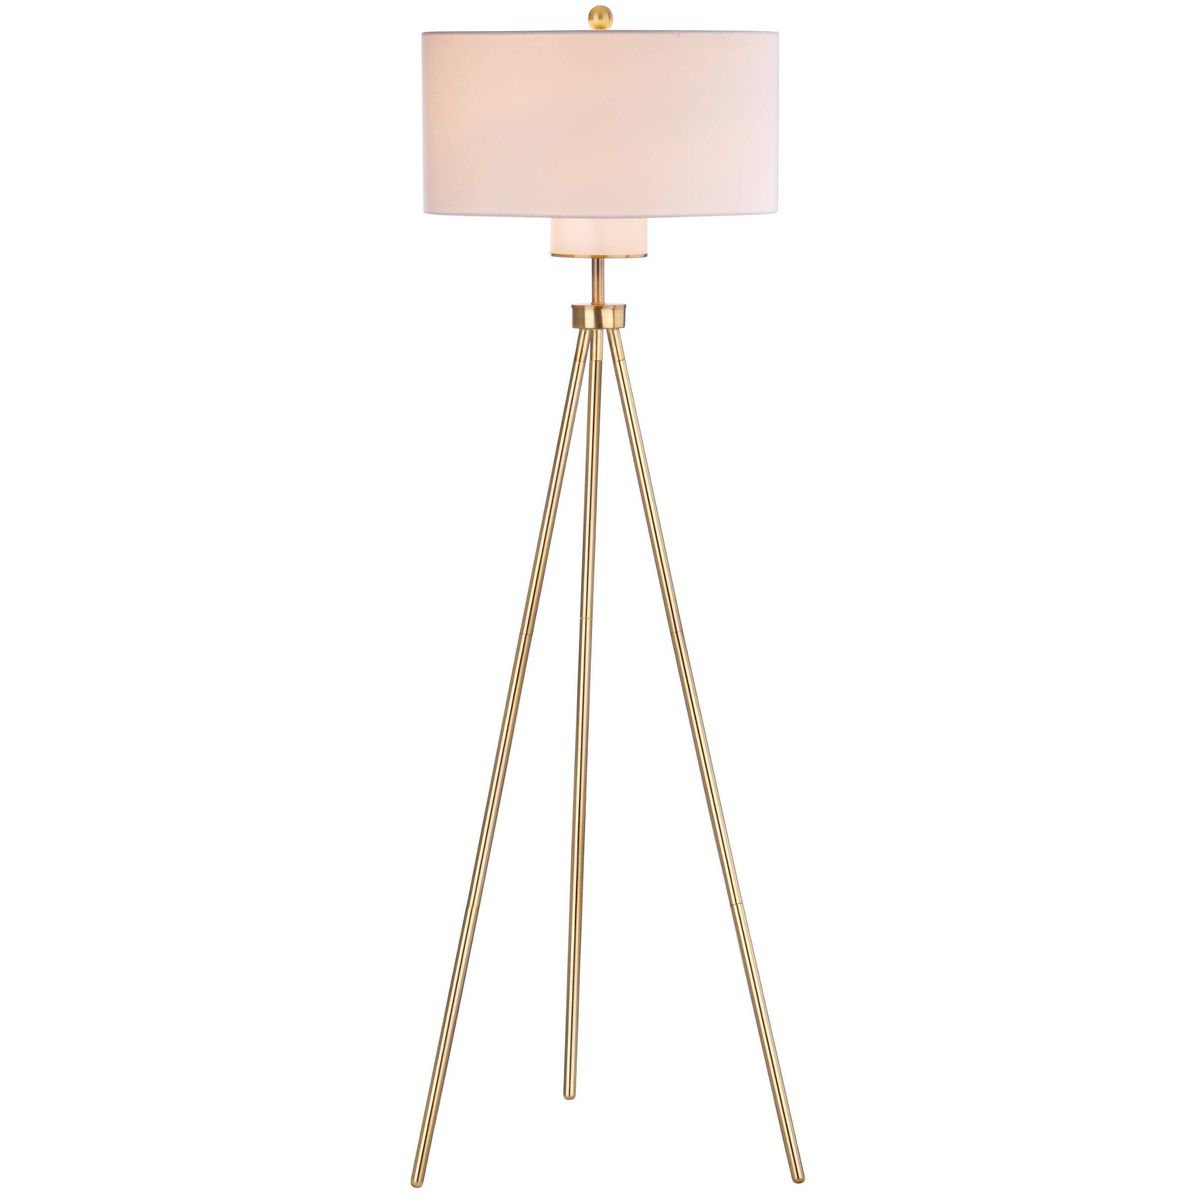 Brass Enrica Floor Lamp